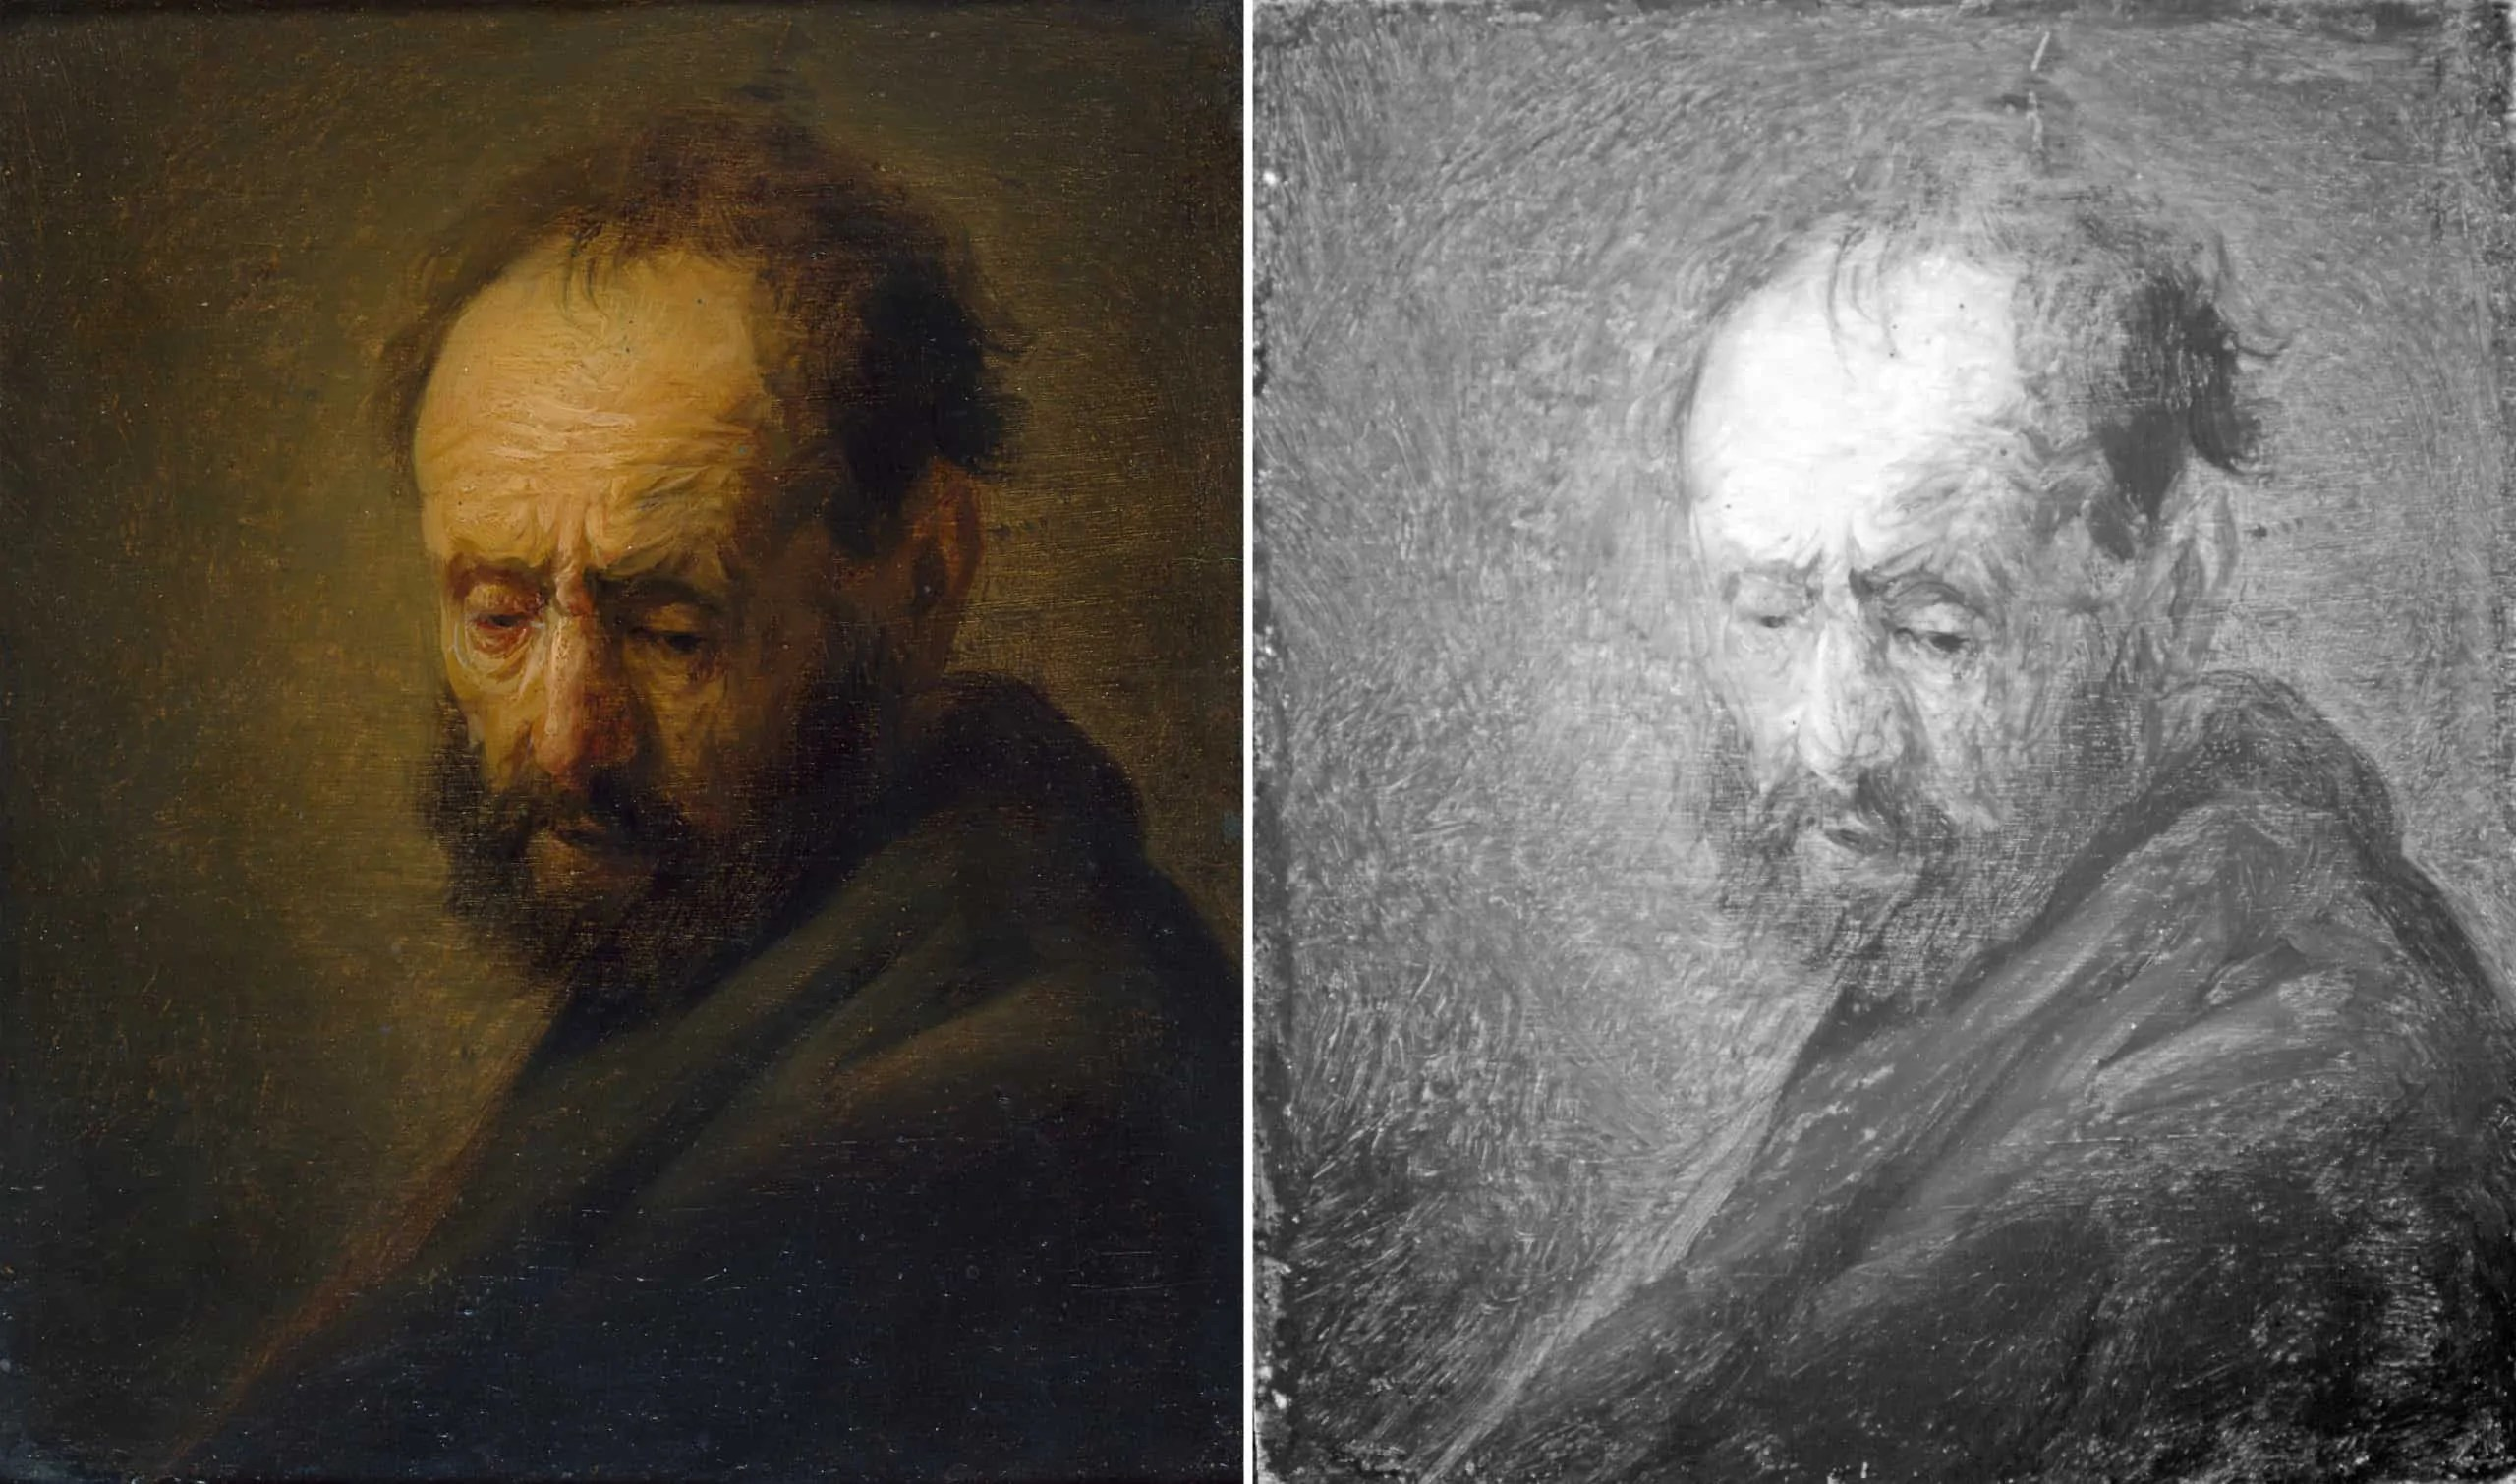 A painting of a man with a beard compared to a black and white infrared photo of it